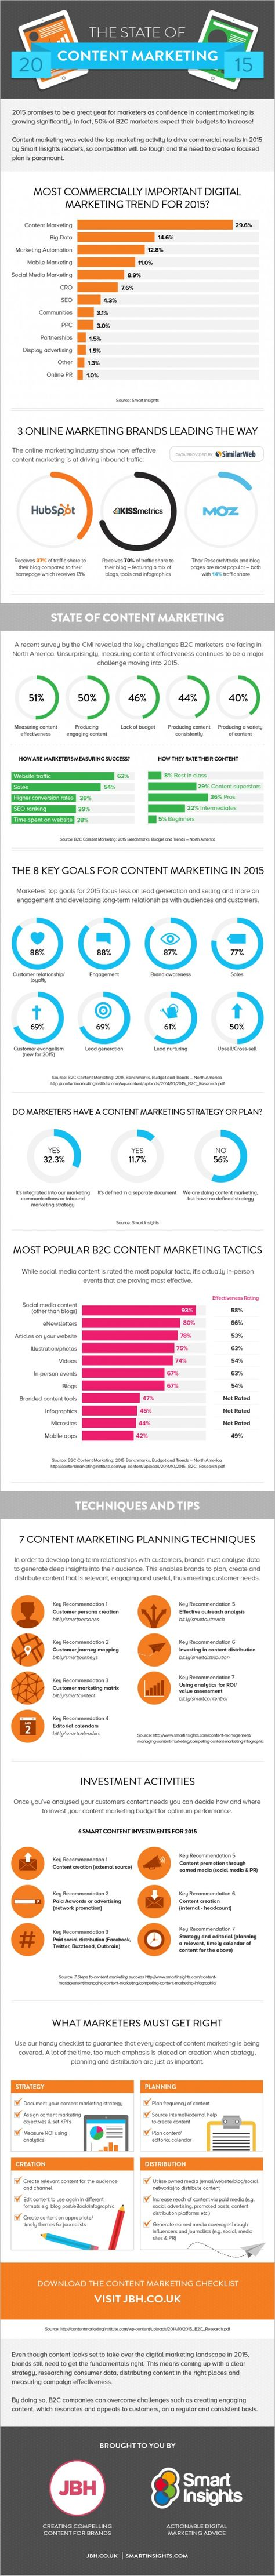 The State of Content Marketing 2015 [INFOGRAPHIC]